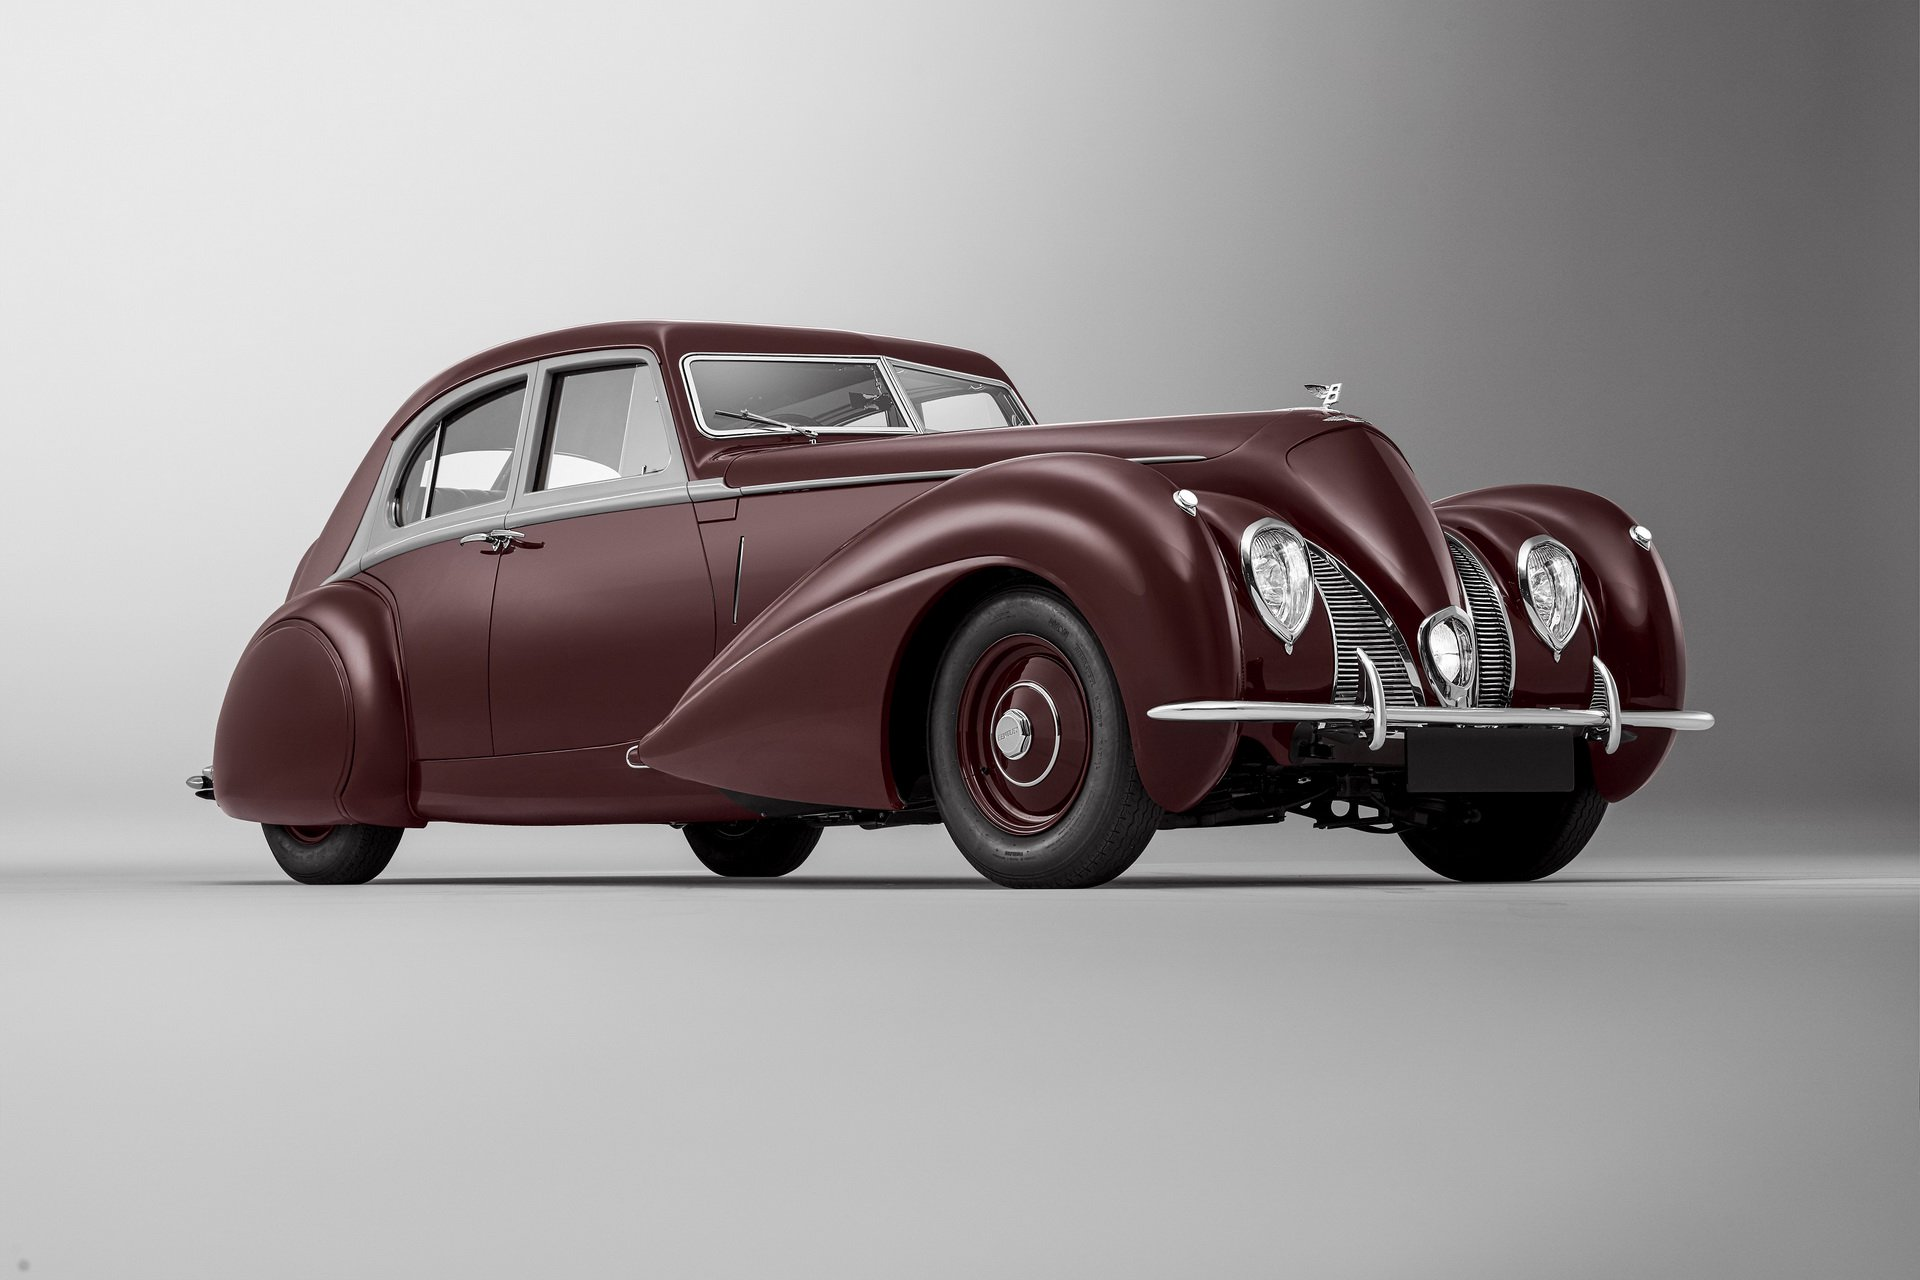 Mulliner, Bentley's in-house customization and tuning shop, has finished building a replica of the Corniche sedan/saloon destroyed during the World War II. The original car emerged in 1939 based on the Bentley Mark V chassis and a custom body by Carrosserie Vanvooren (Paris, France).